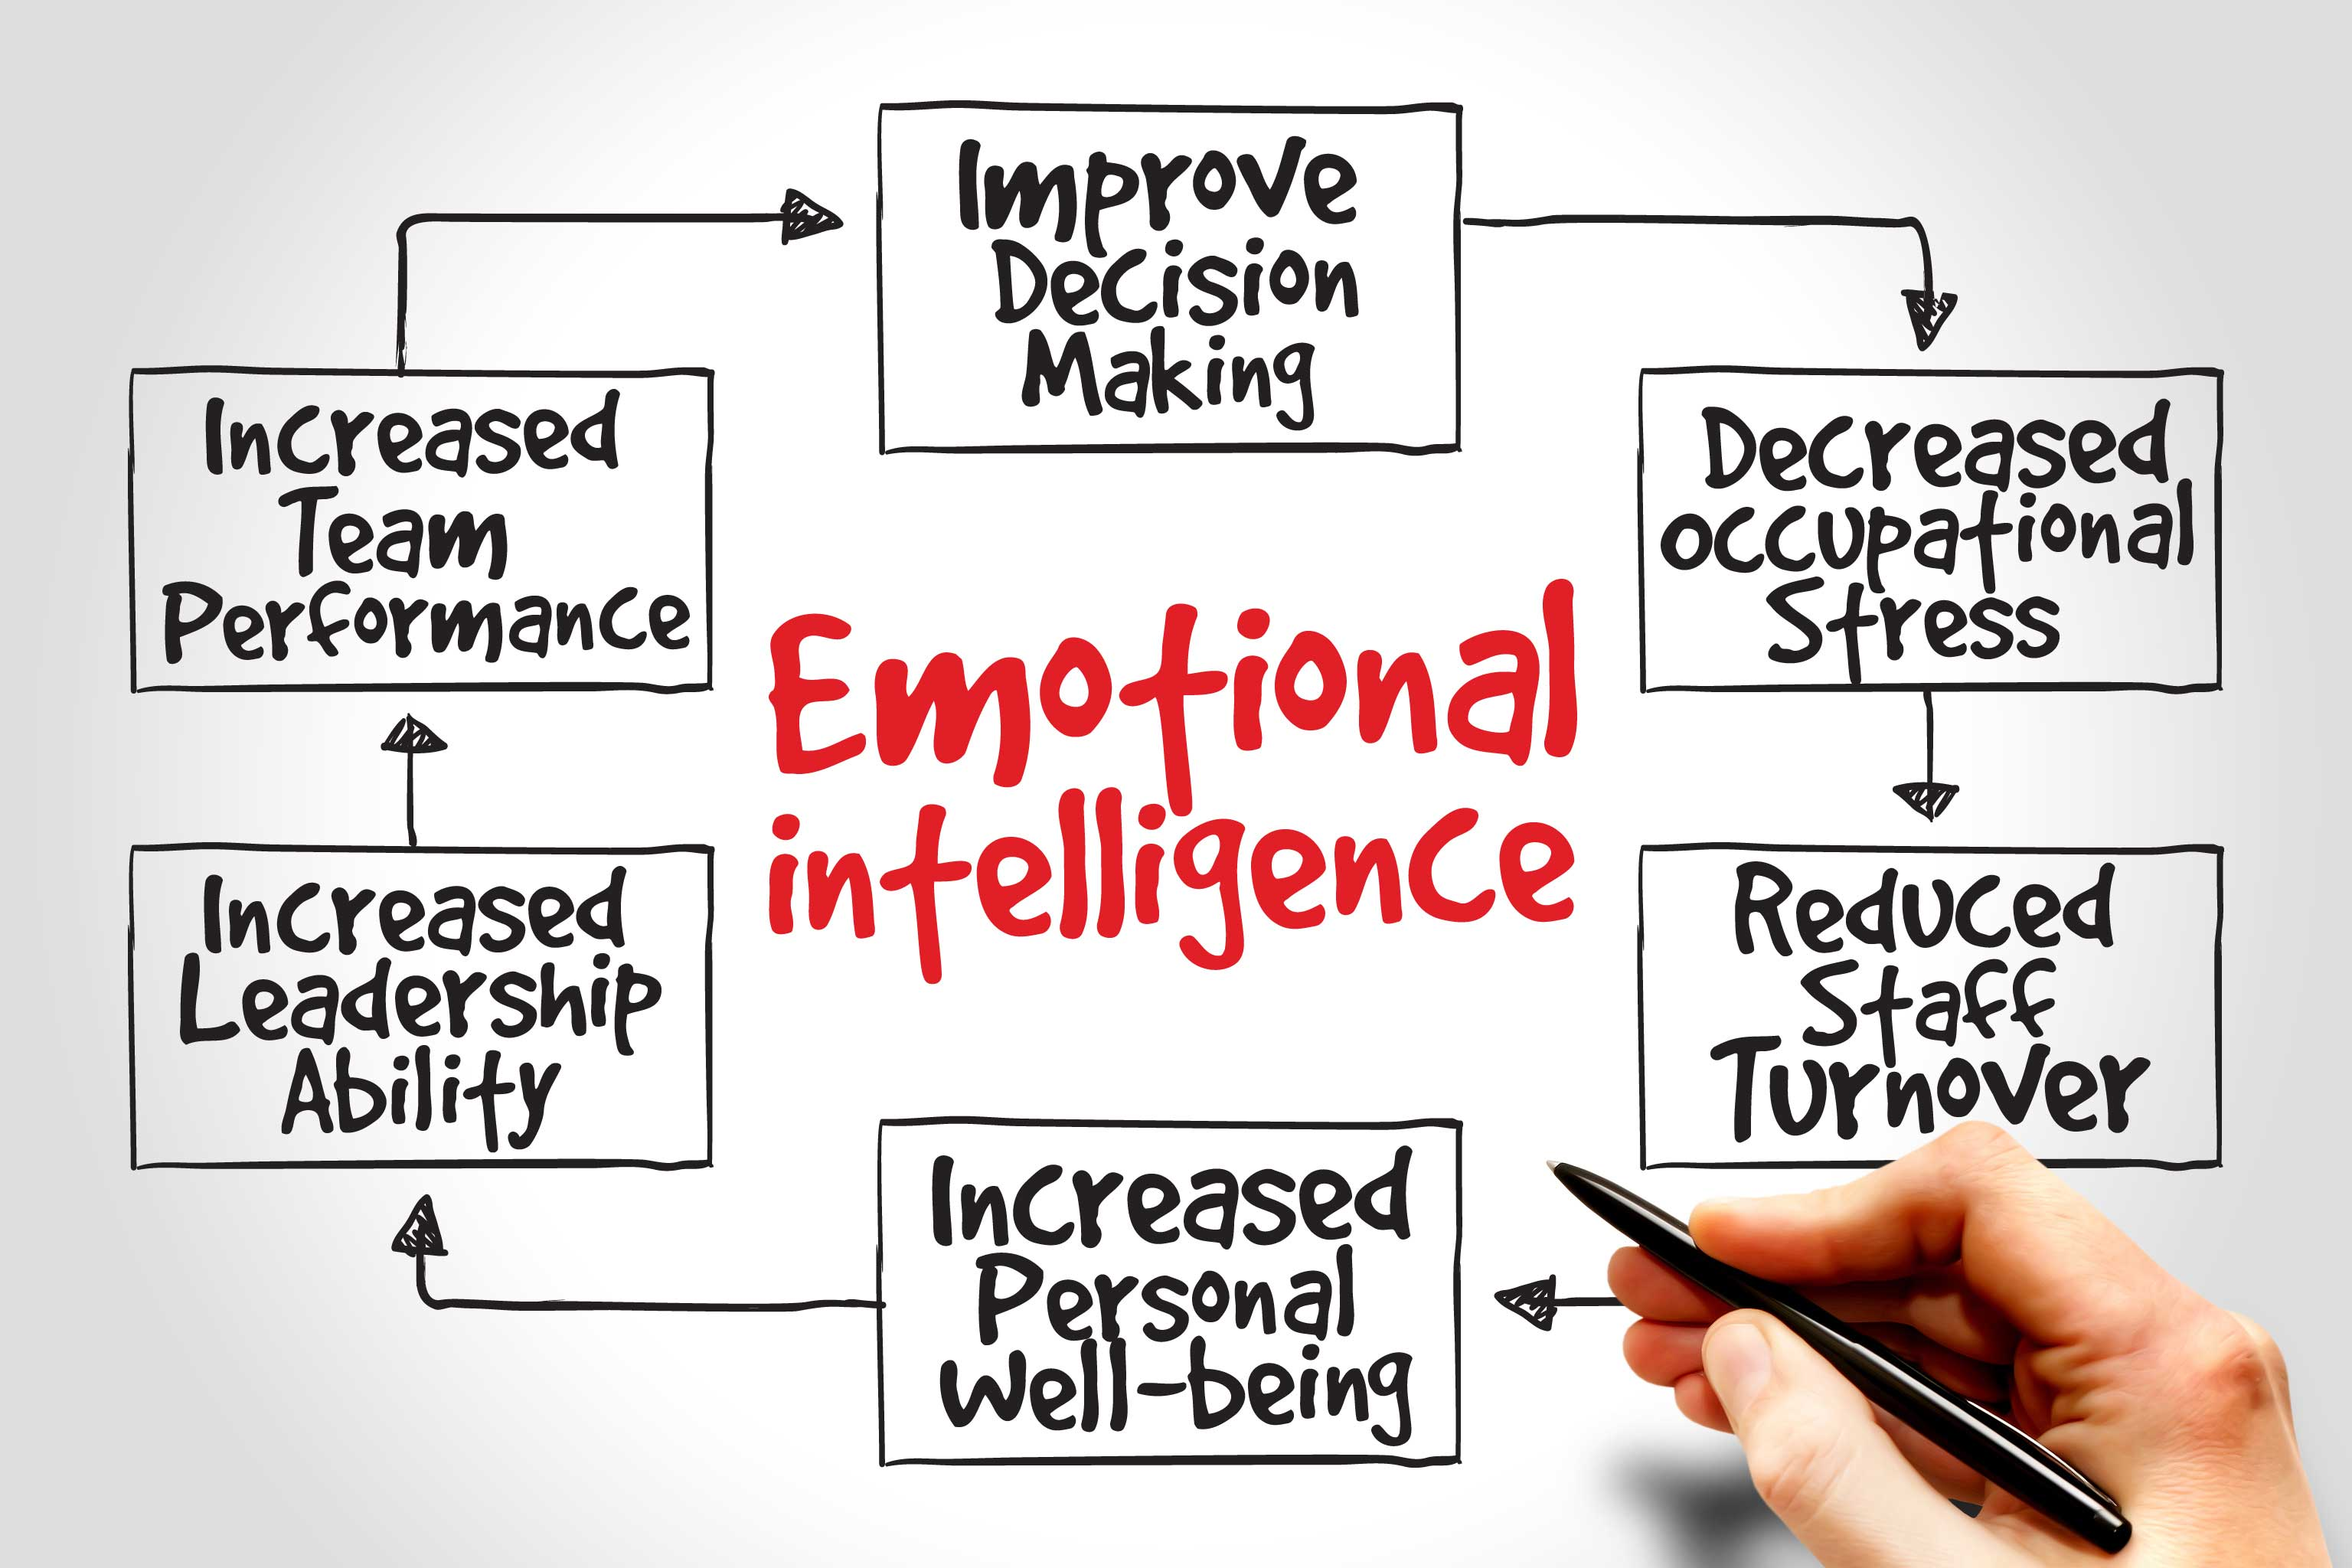 Emotional Intelligence Is Important to Success in a Digital Environment